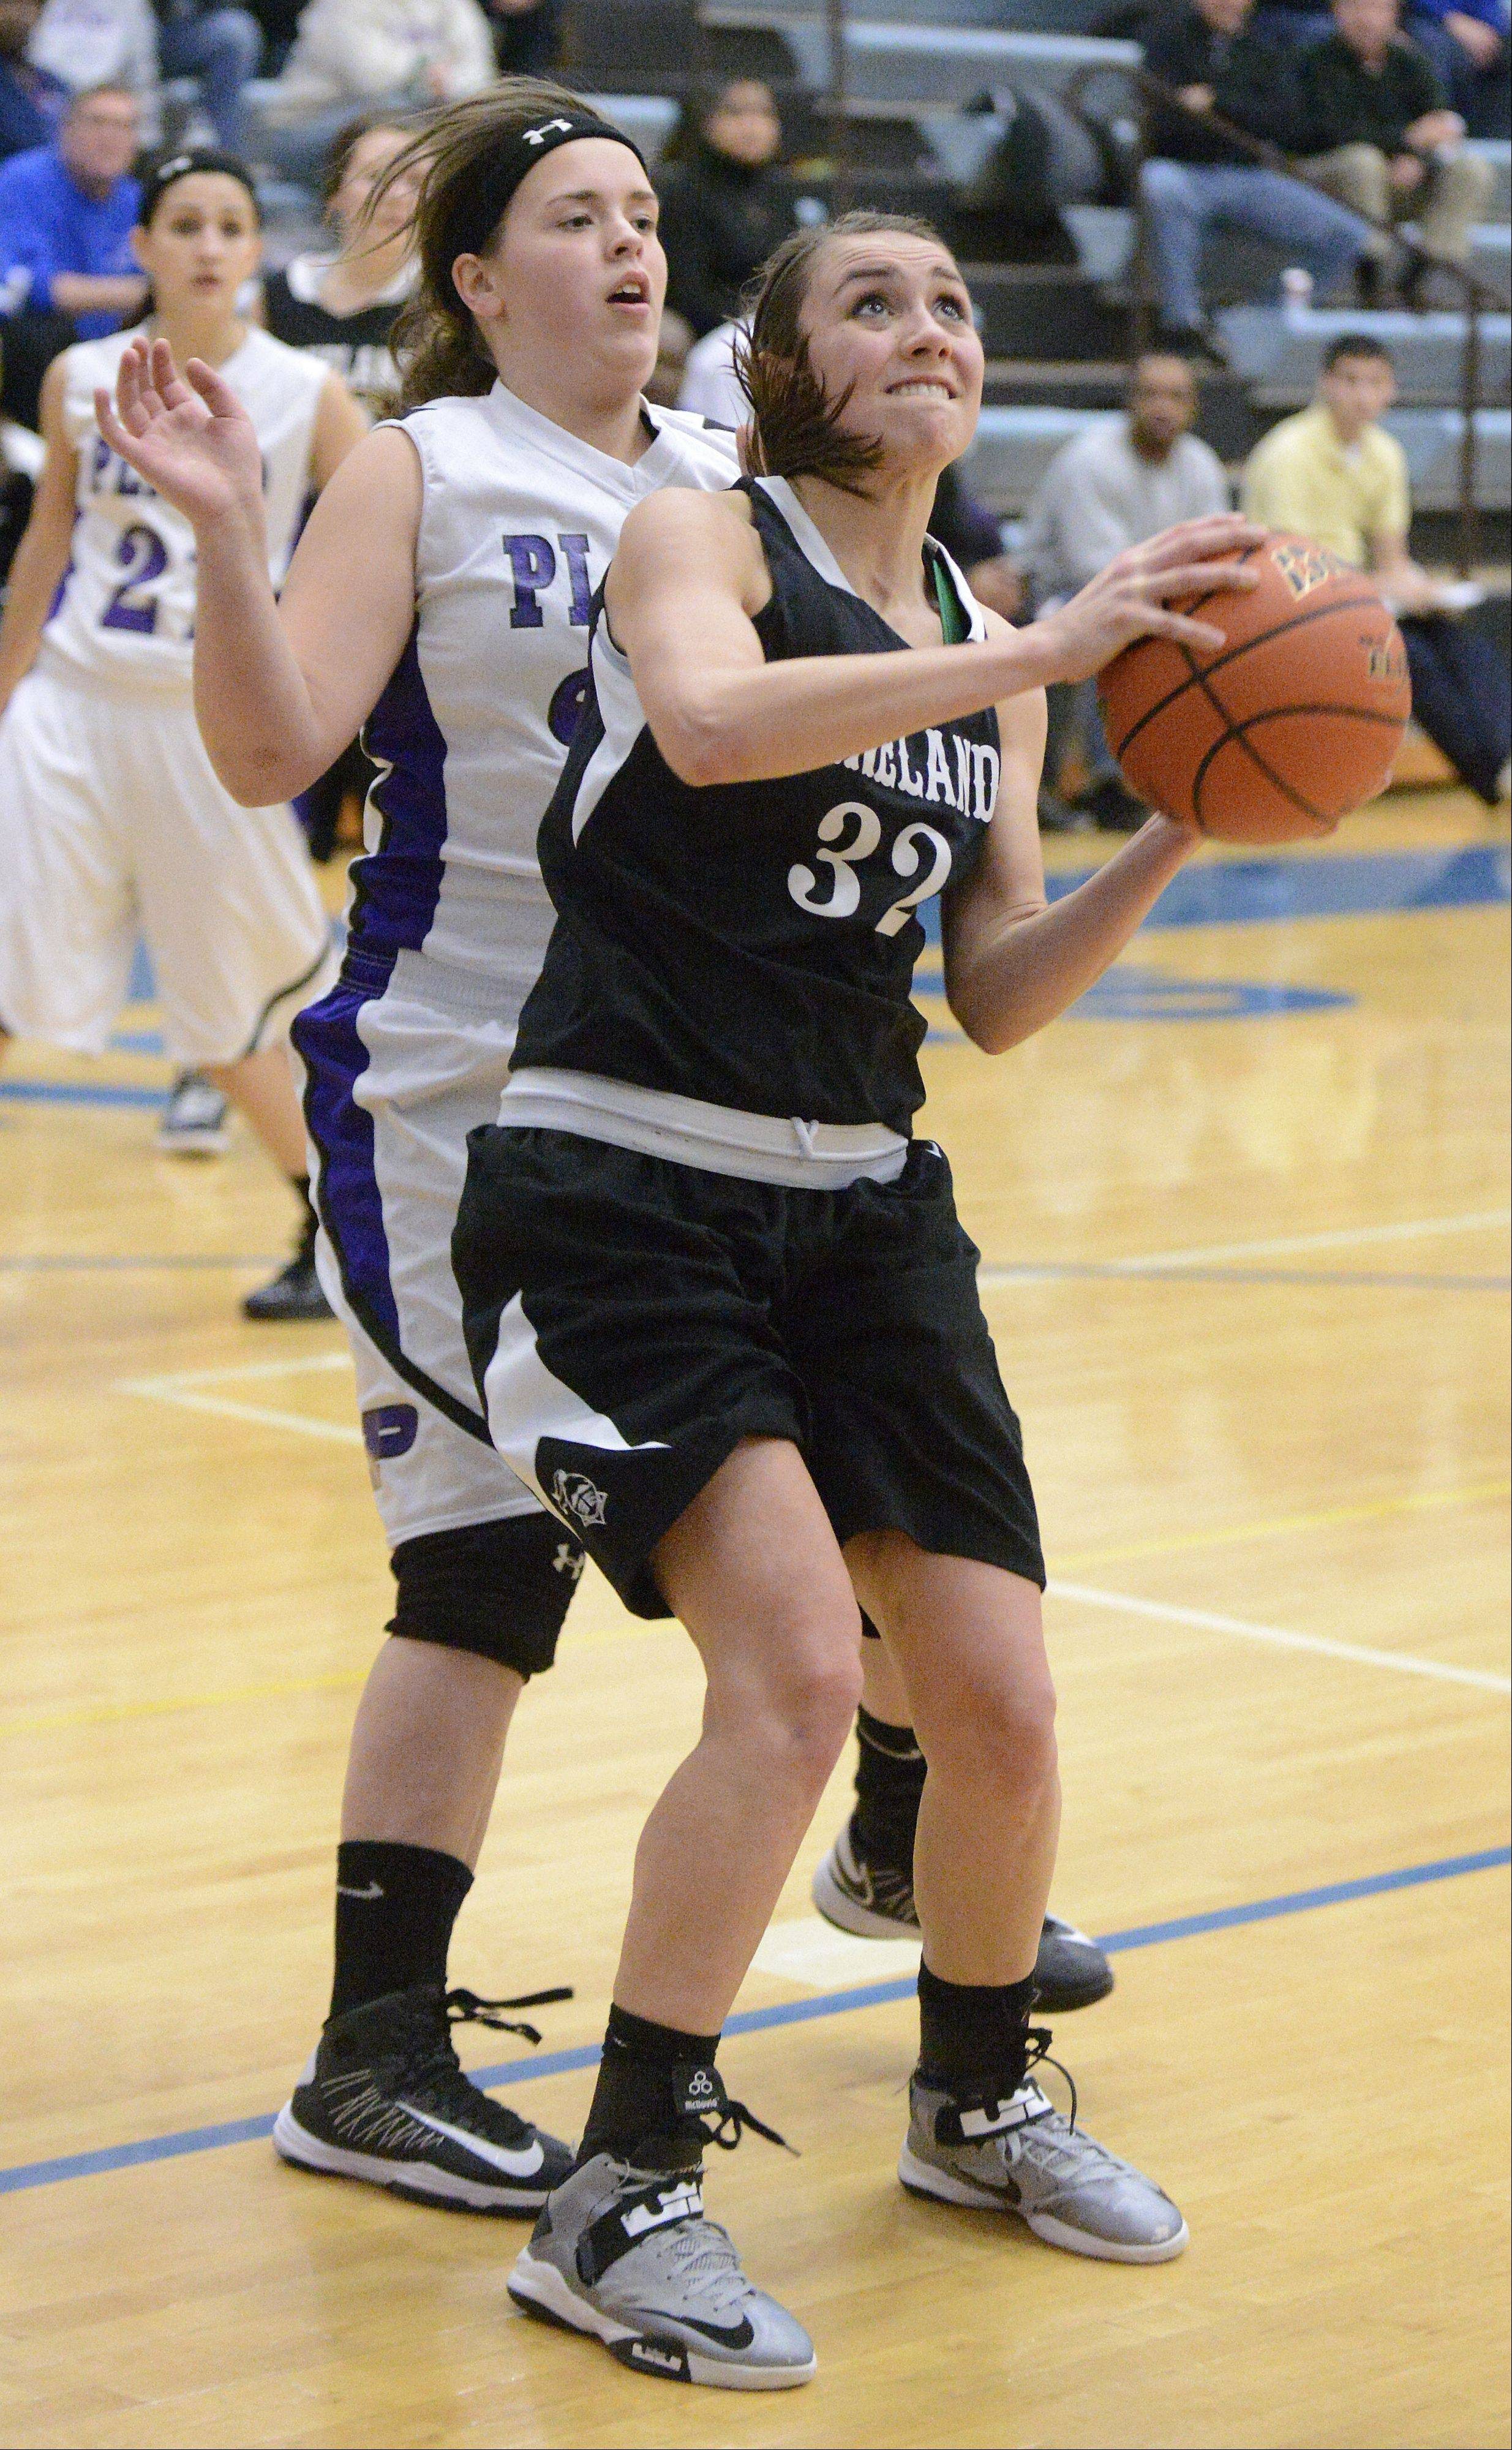 Kaneland's Emma Bradford attempts a shot after shaking off a block by Plano's Lauren Chernick in the third quarter of the Class 3A regional game on Wednesday, February 13.